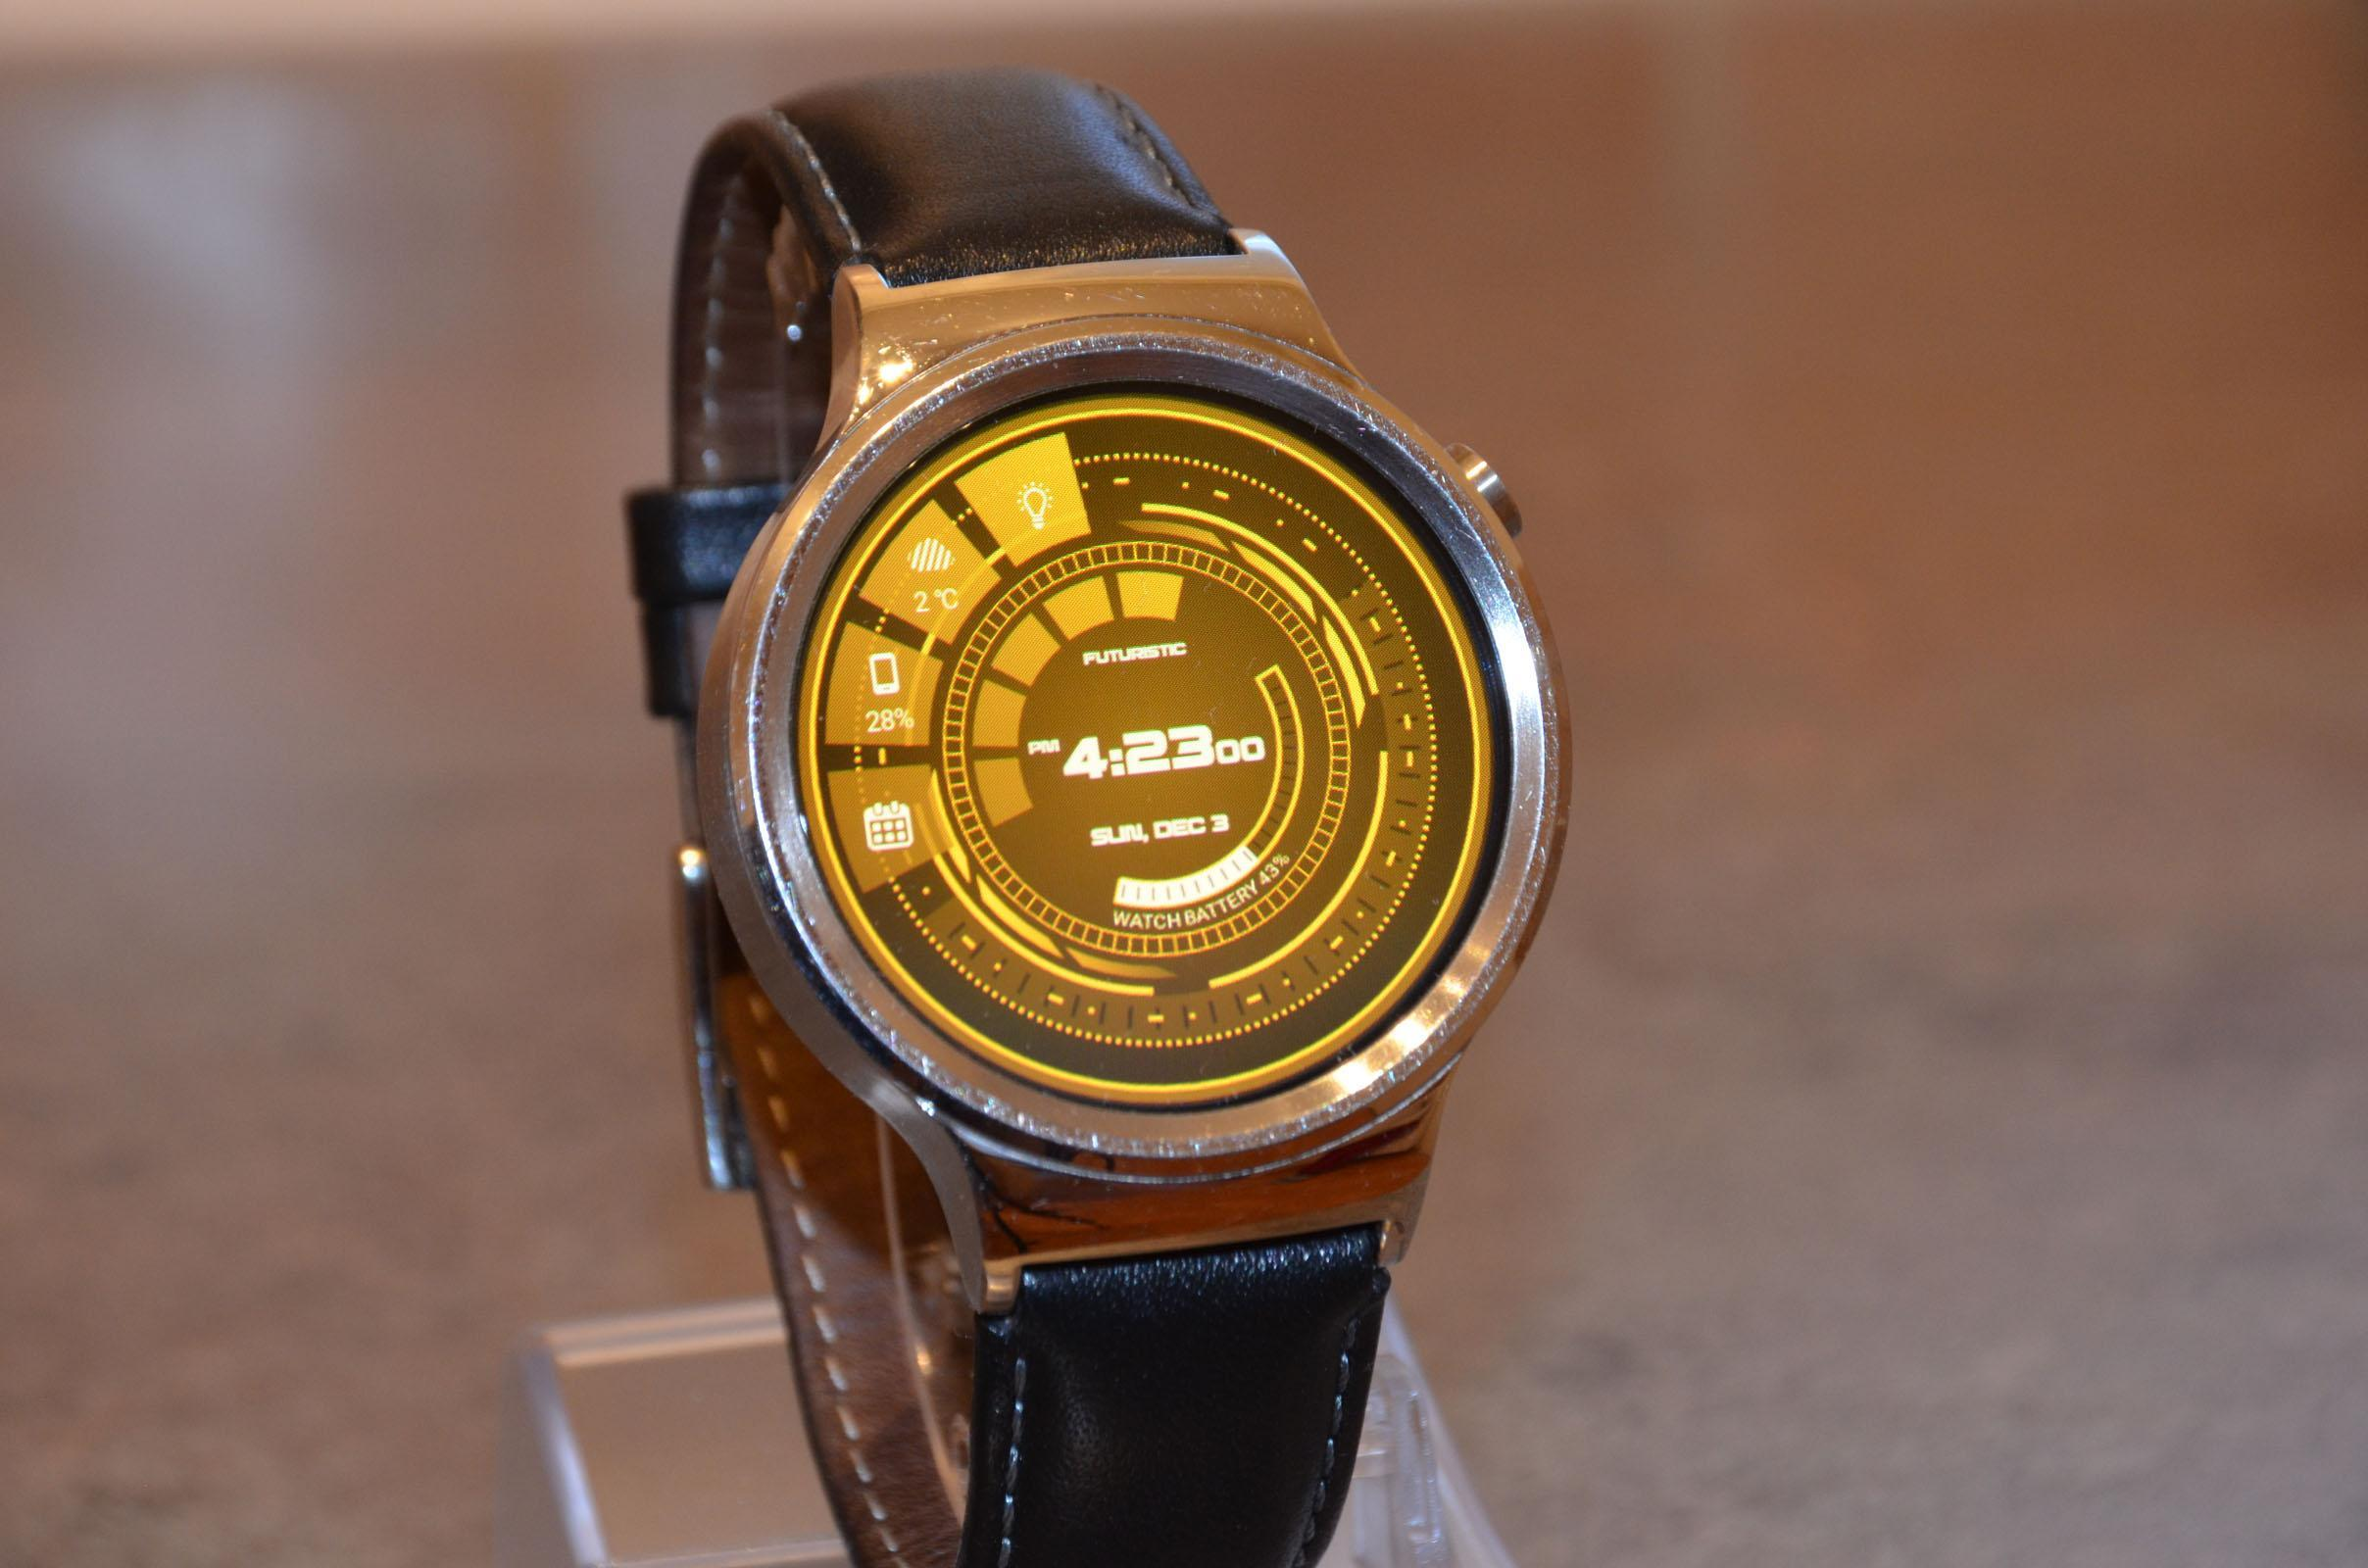 Futuristic GUI Watch Face for Android - APK Download